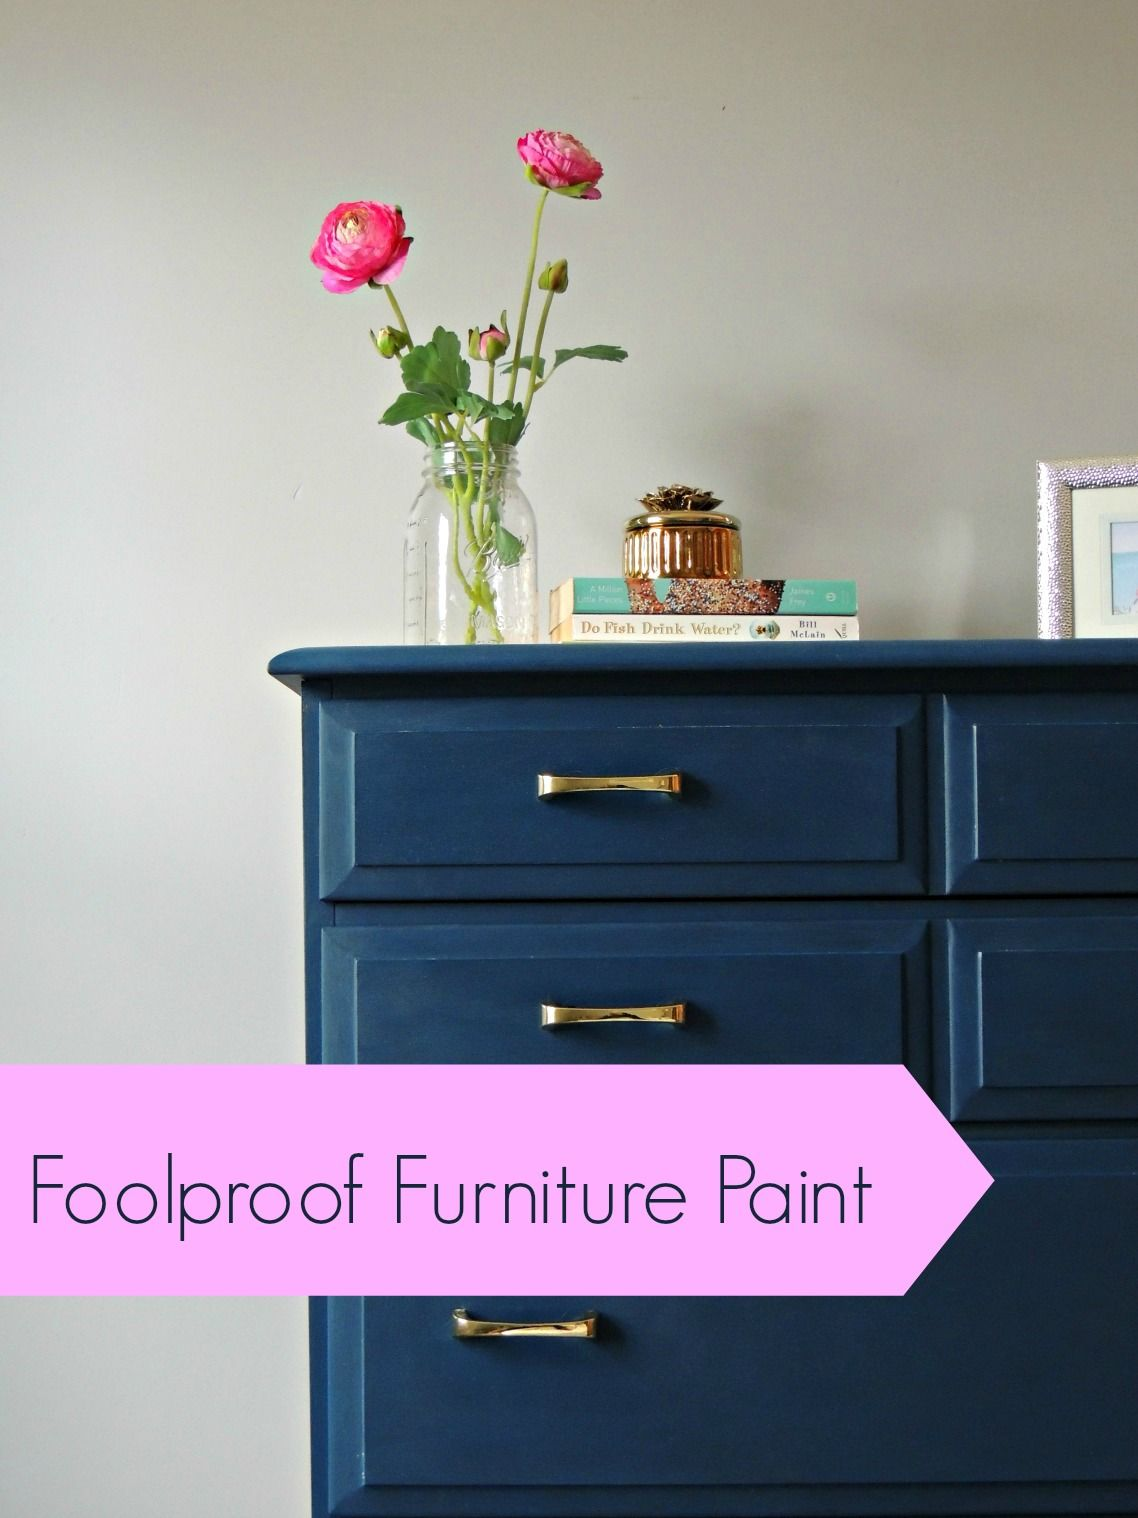 How To Paint Furniture Perfectly And Get Perfect Results   Playroom